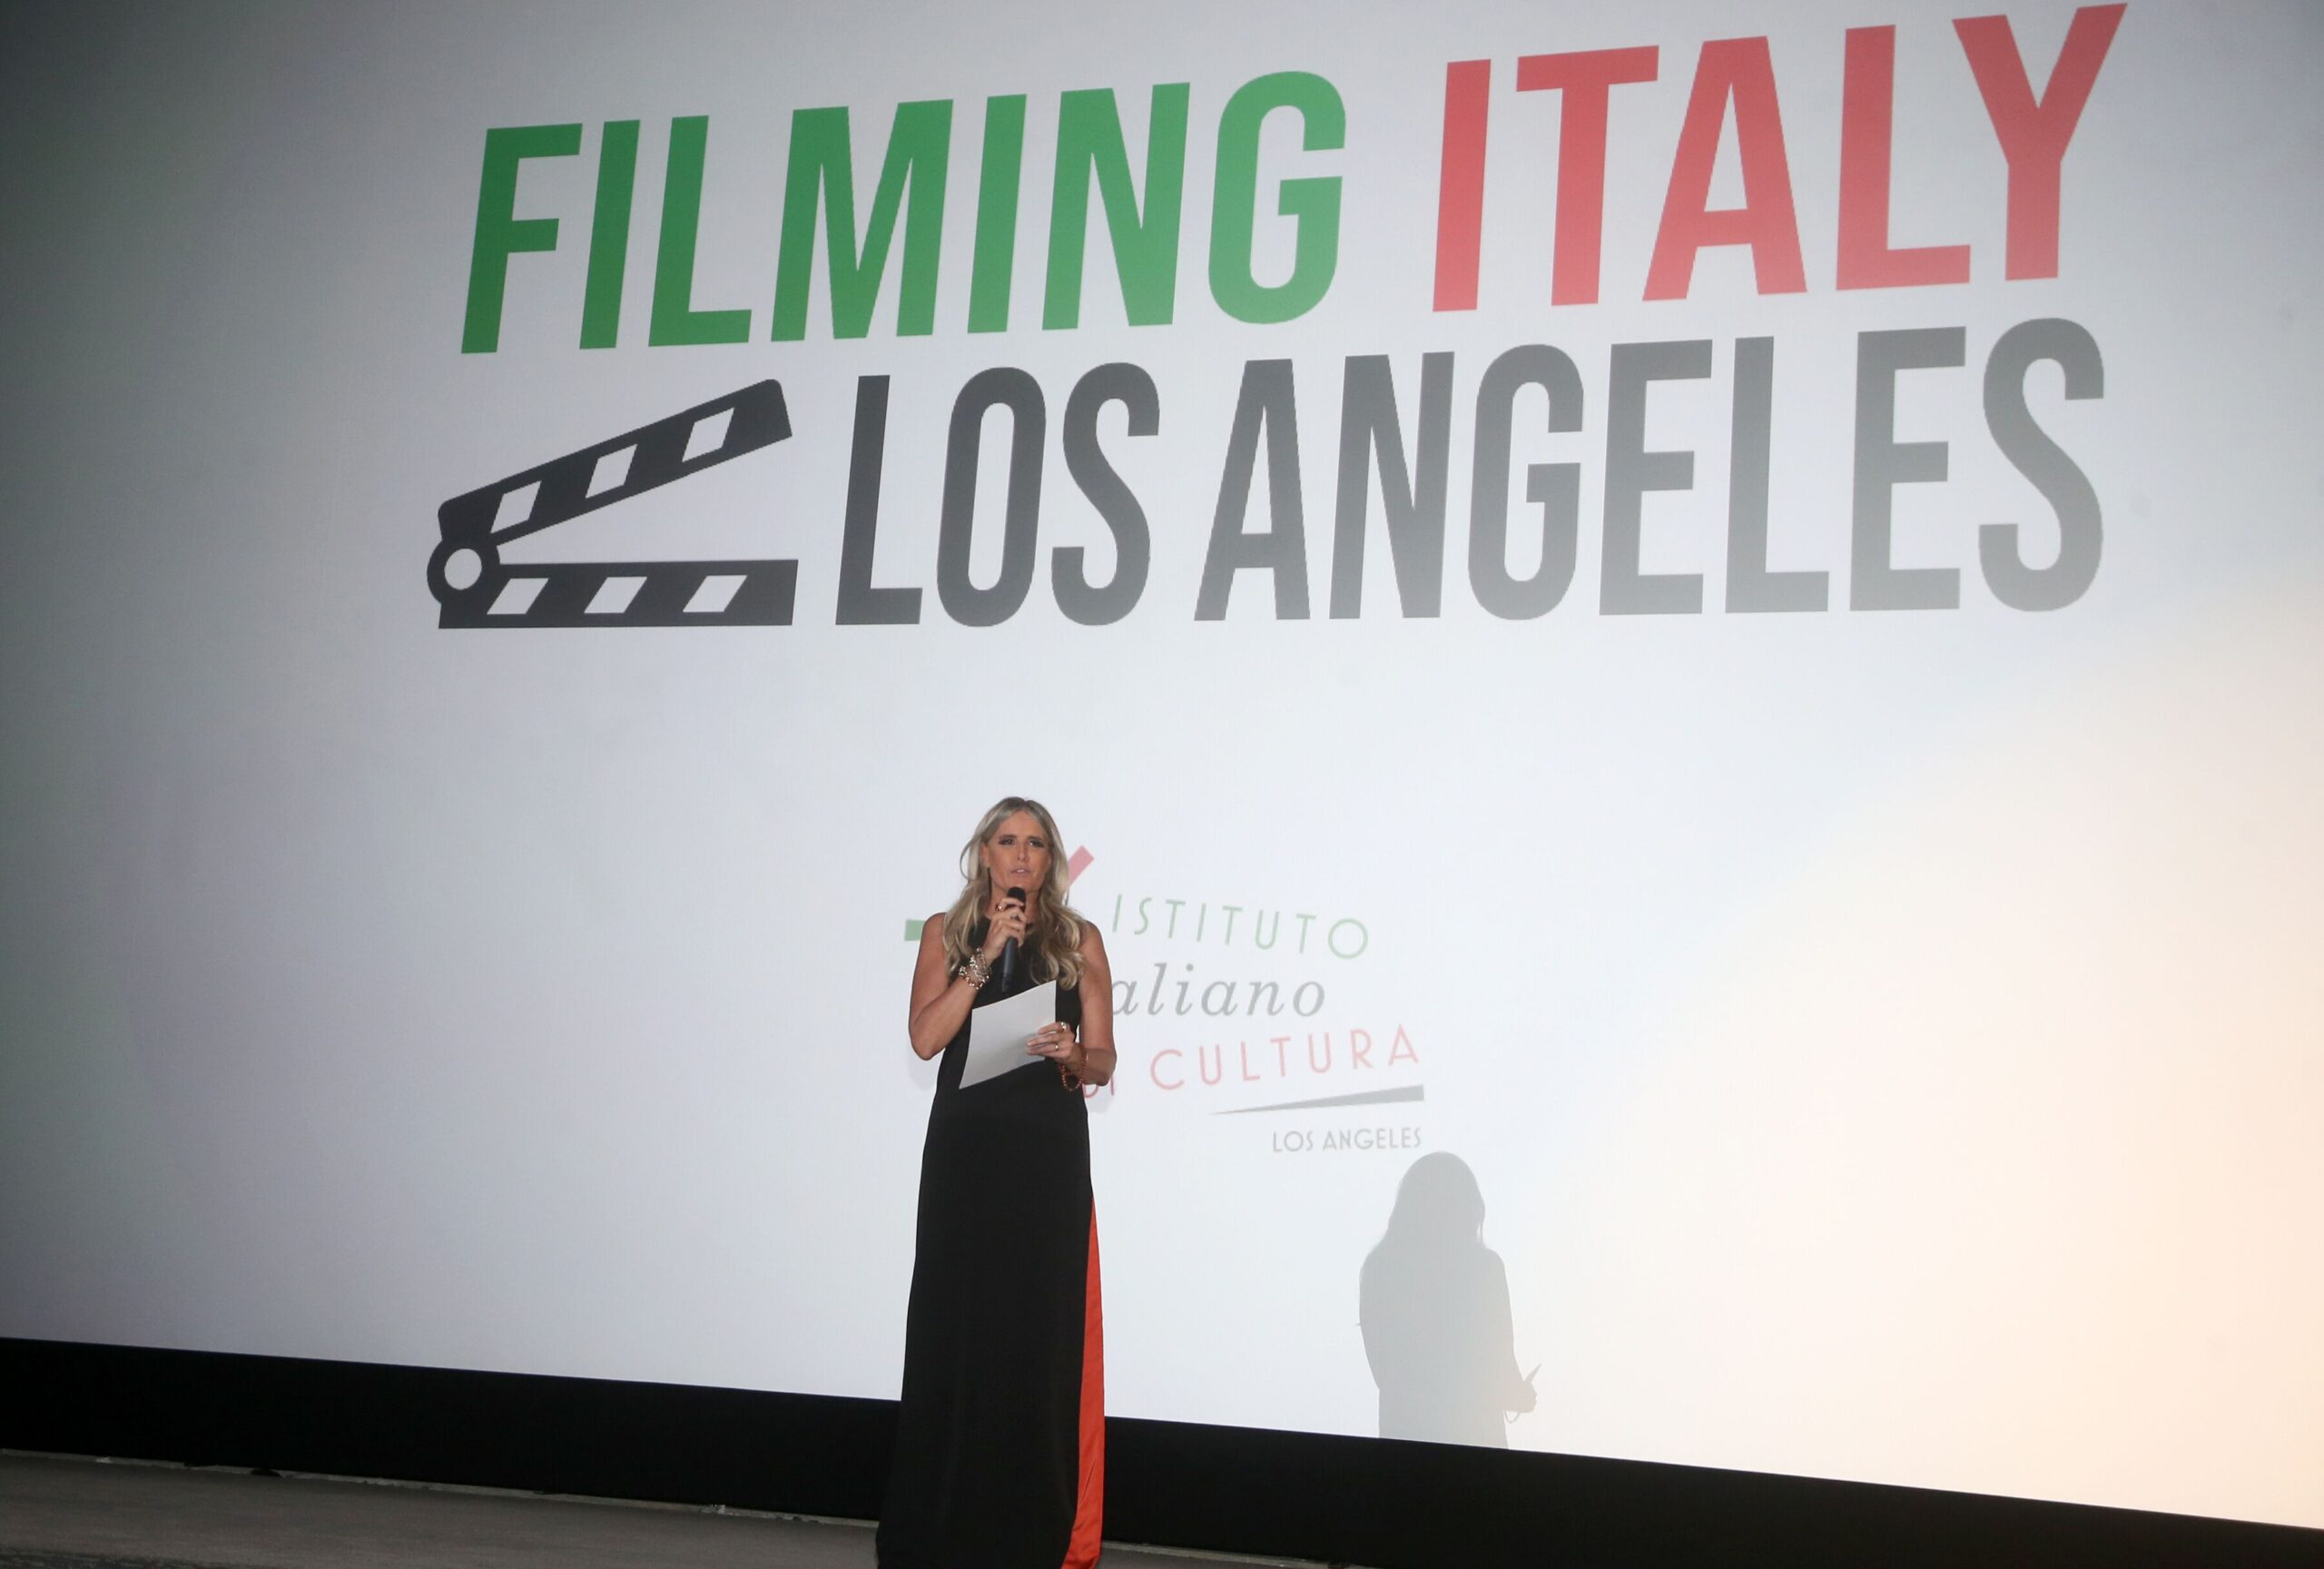 filiming italy